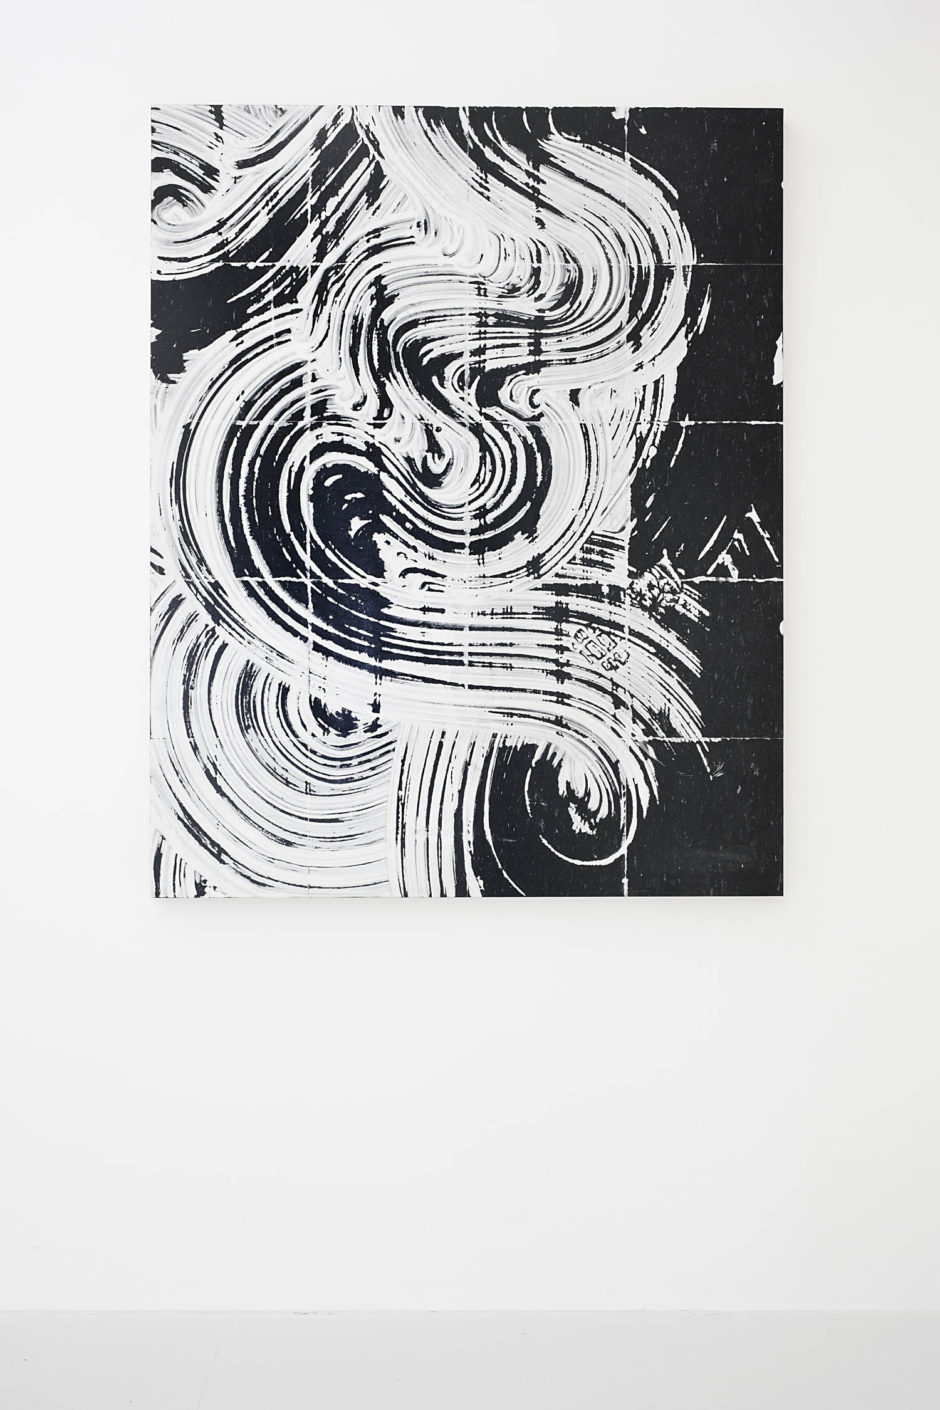 """Untitled (Mop no. 7)"", 2015, fiber glass reinforced plaster on linoleum, mounted on panel, 60 x 48 x 2.15 inches, 152.4 x 121.9 x 5.5 cm"